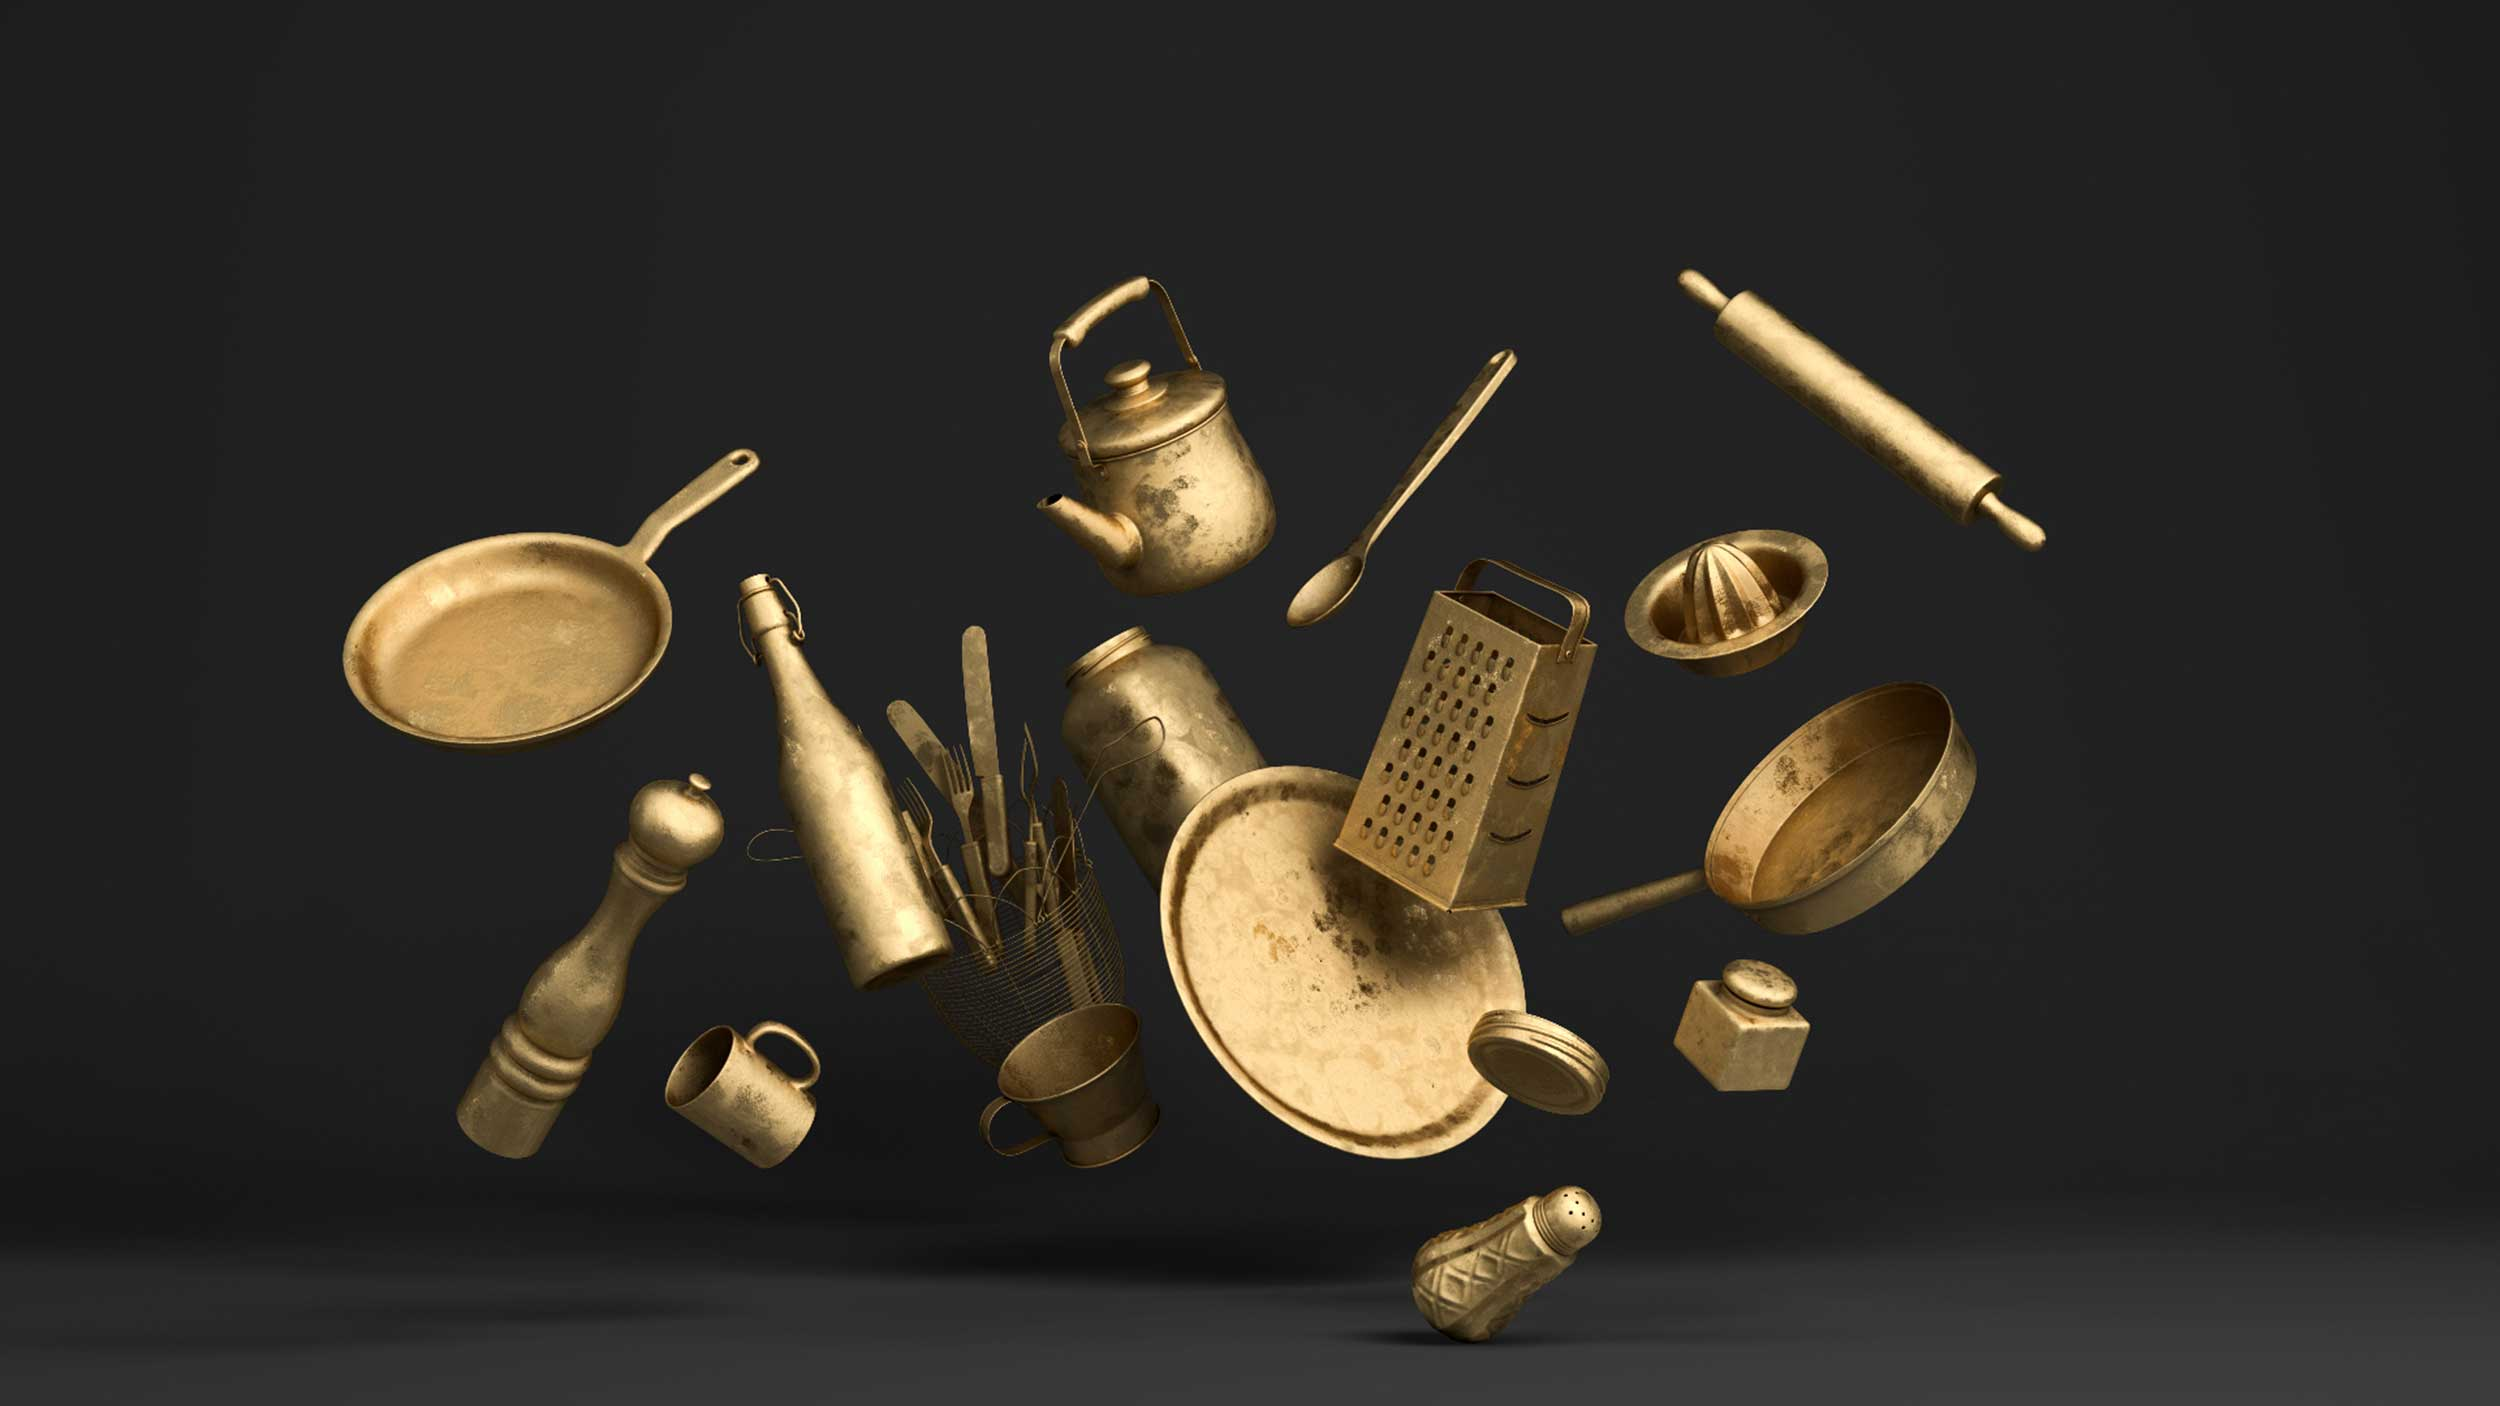 cgi-product-gold-pots-pans-salt-pepper-shakers-kitchen-items-Nico Castro